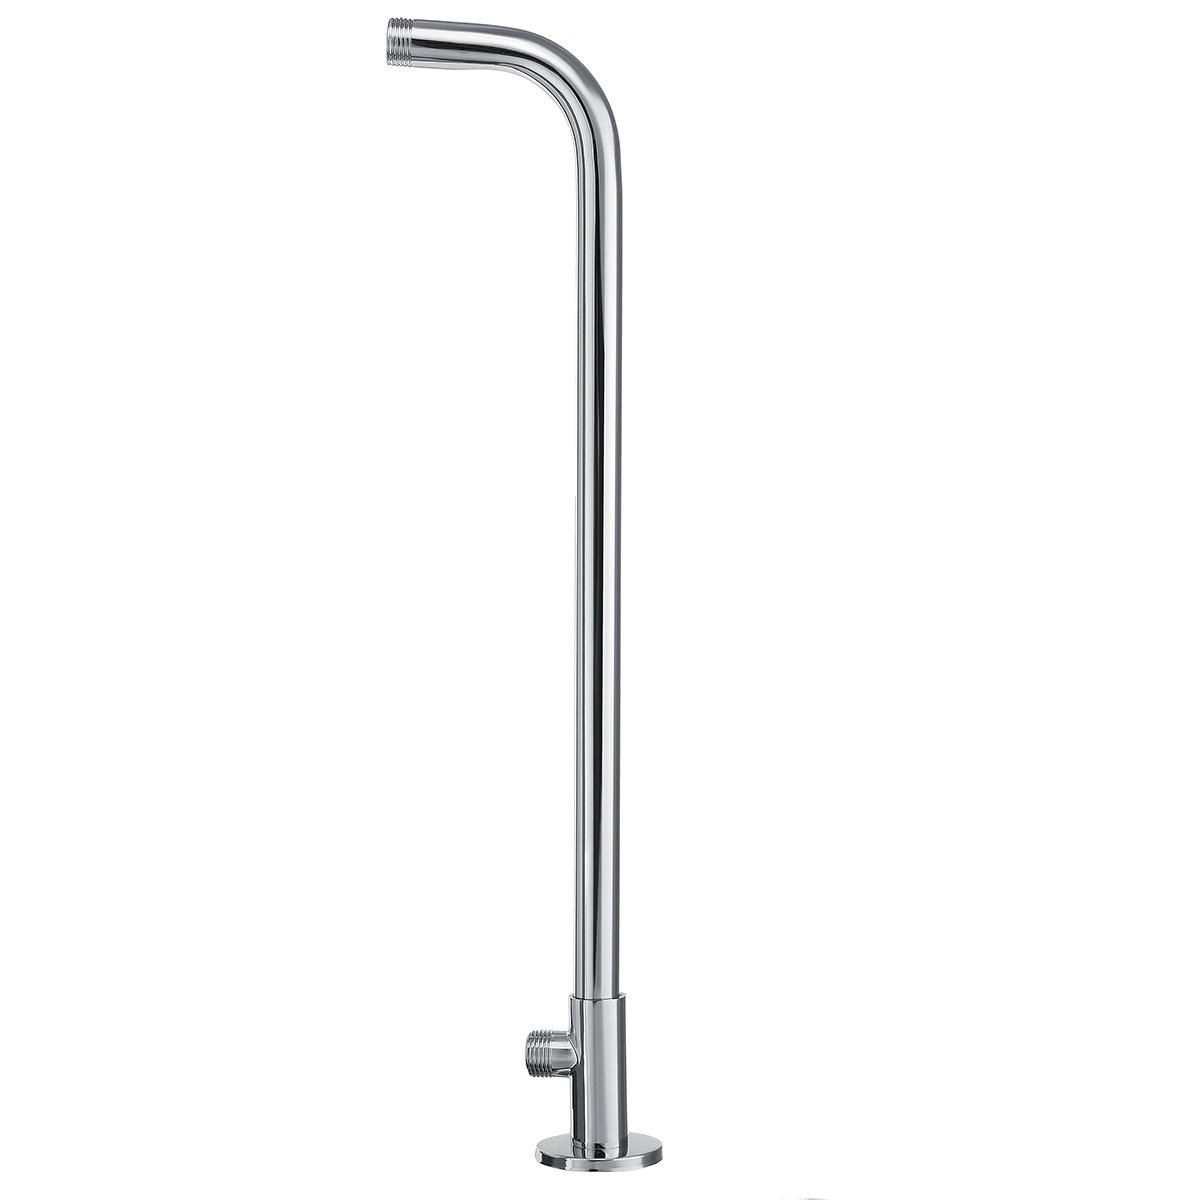 New 49cm Stainless Steel Wall Shower Head Extension Pipe